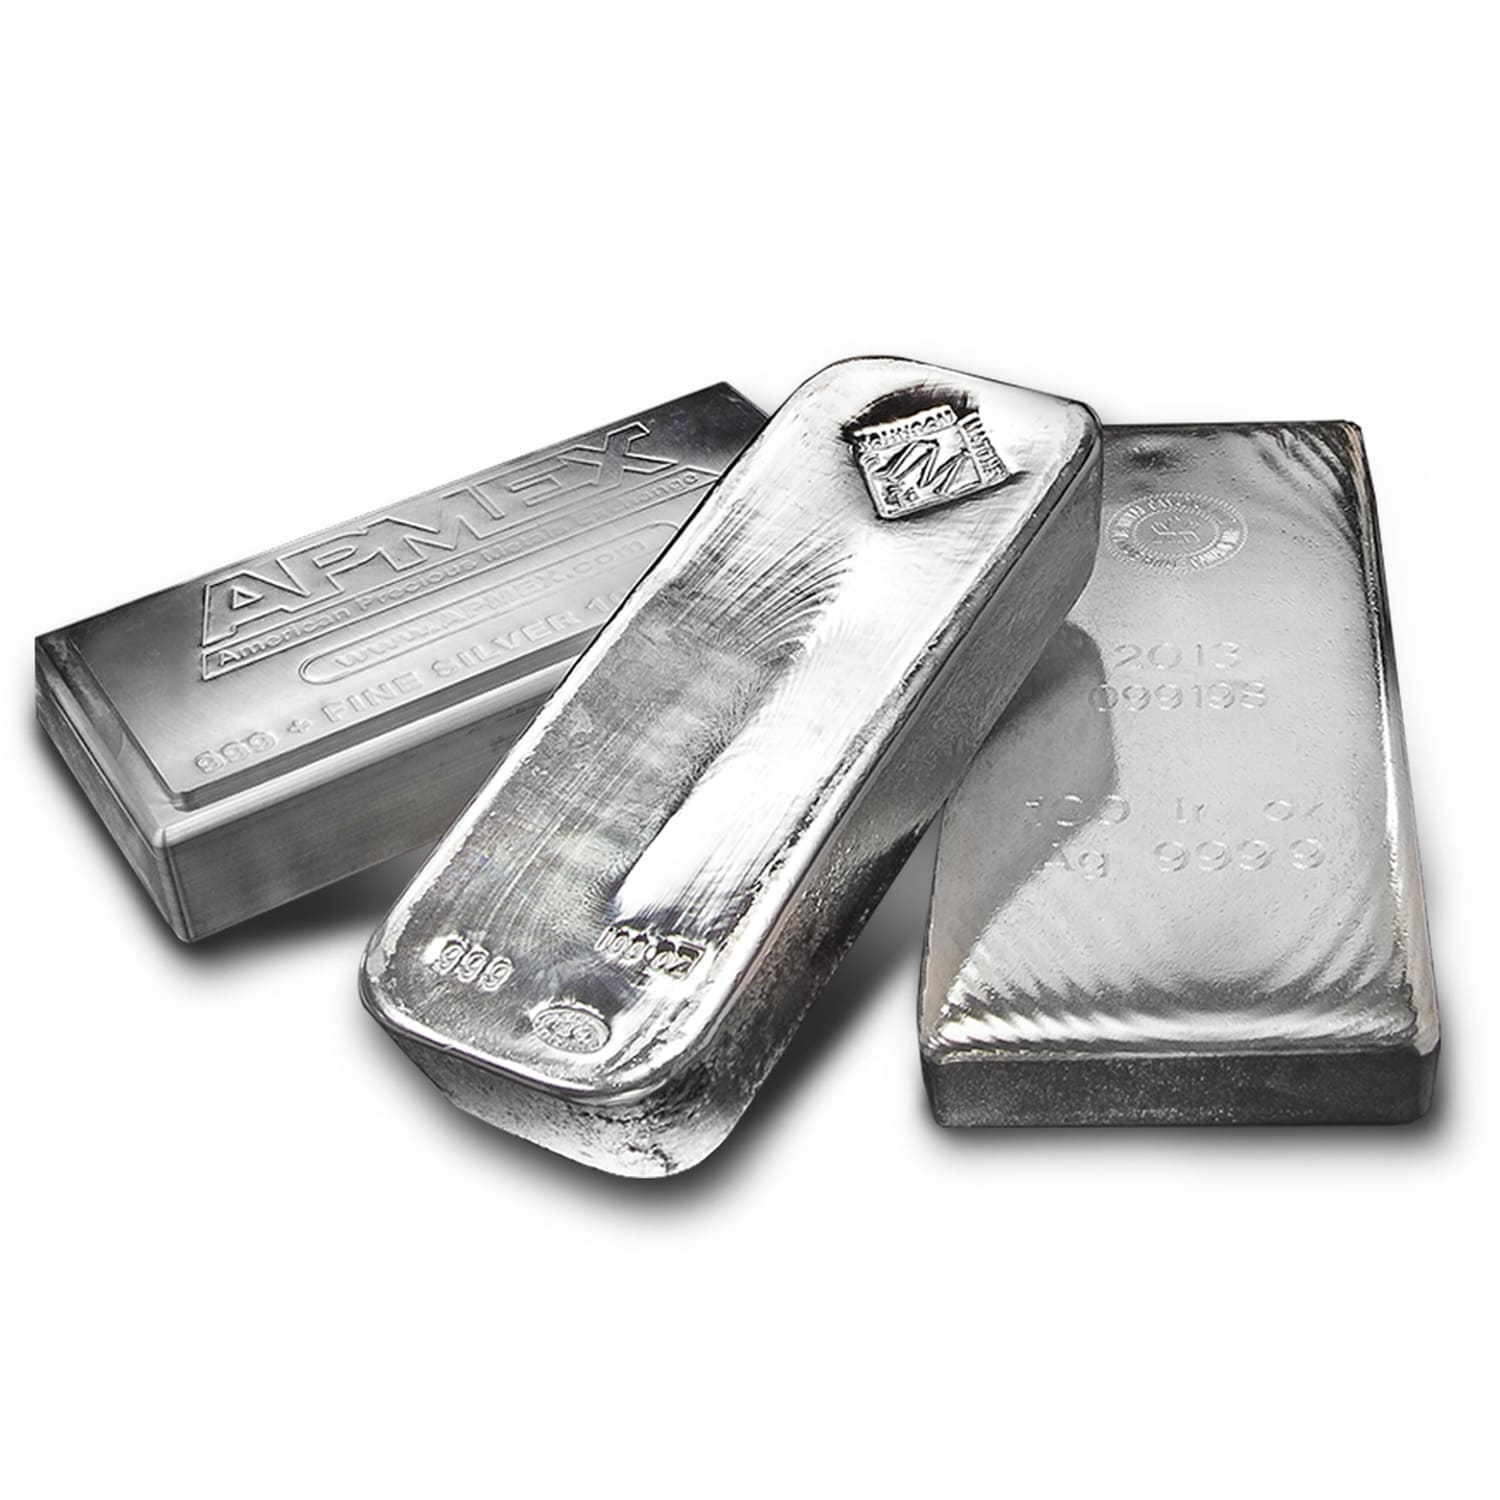 103.00 oz Silver Bar - Secondary Market